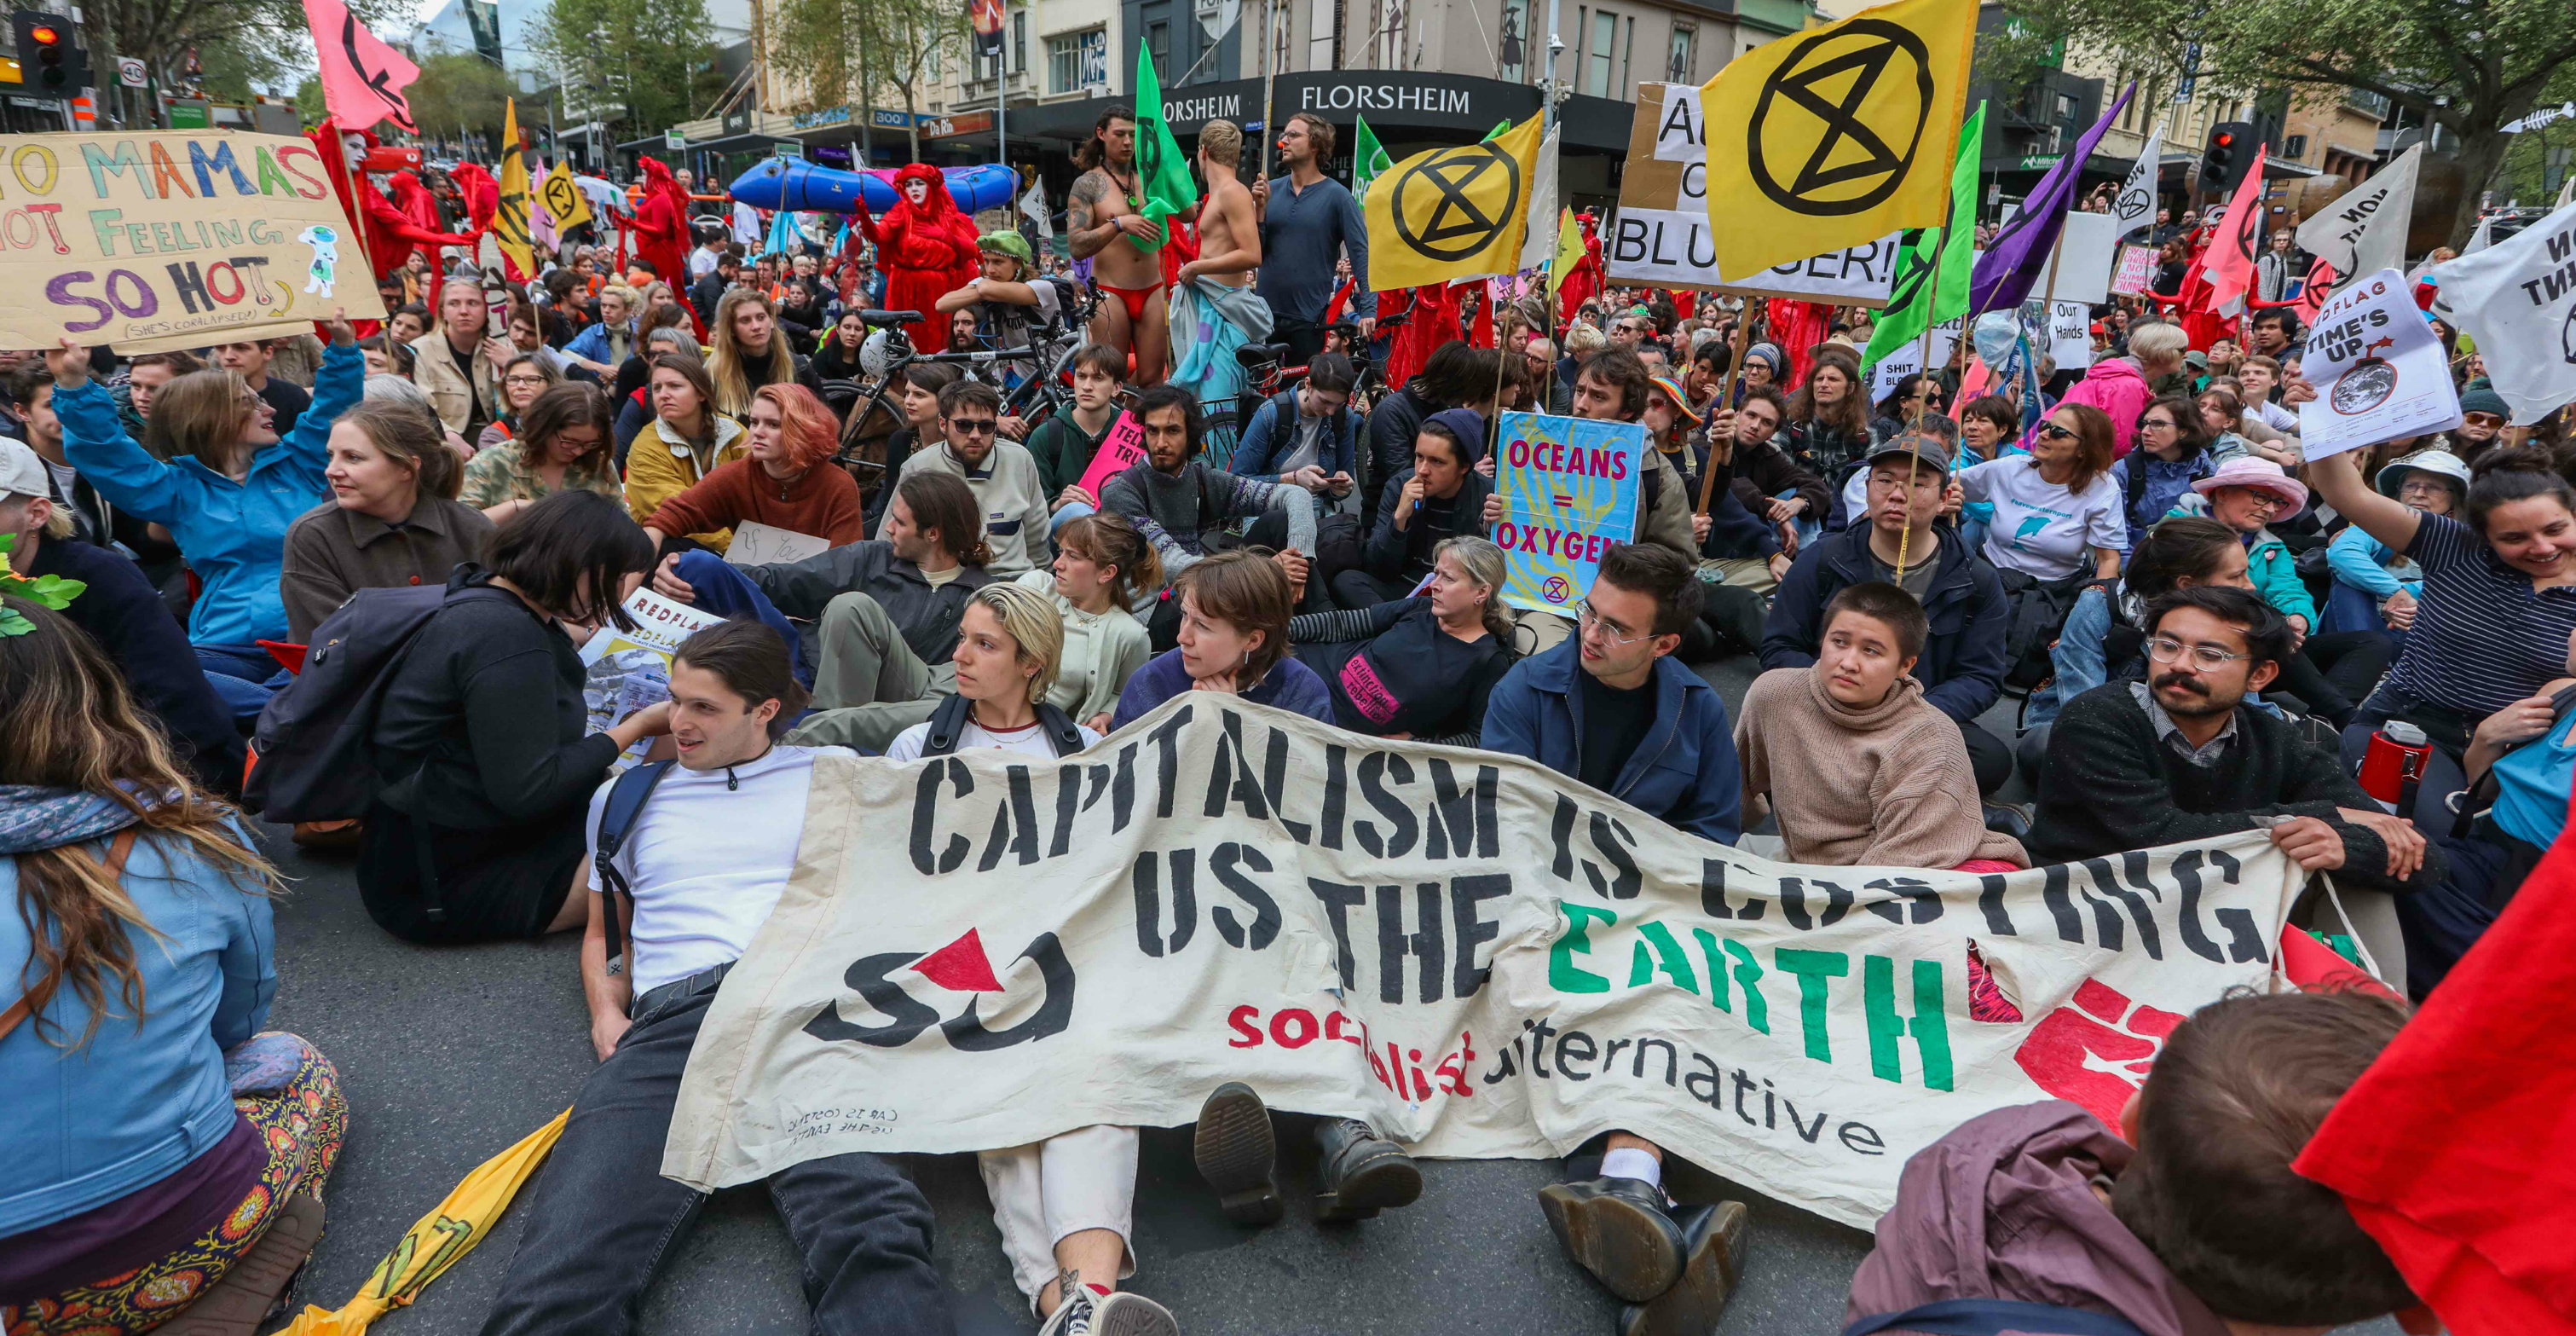 The climate movement, says the author, has correctly perceived that success will require a planetary ethics based on global solidarity and responsibility. Photo: AFP